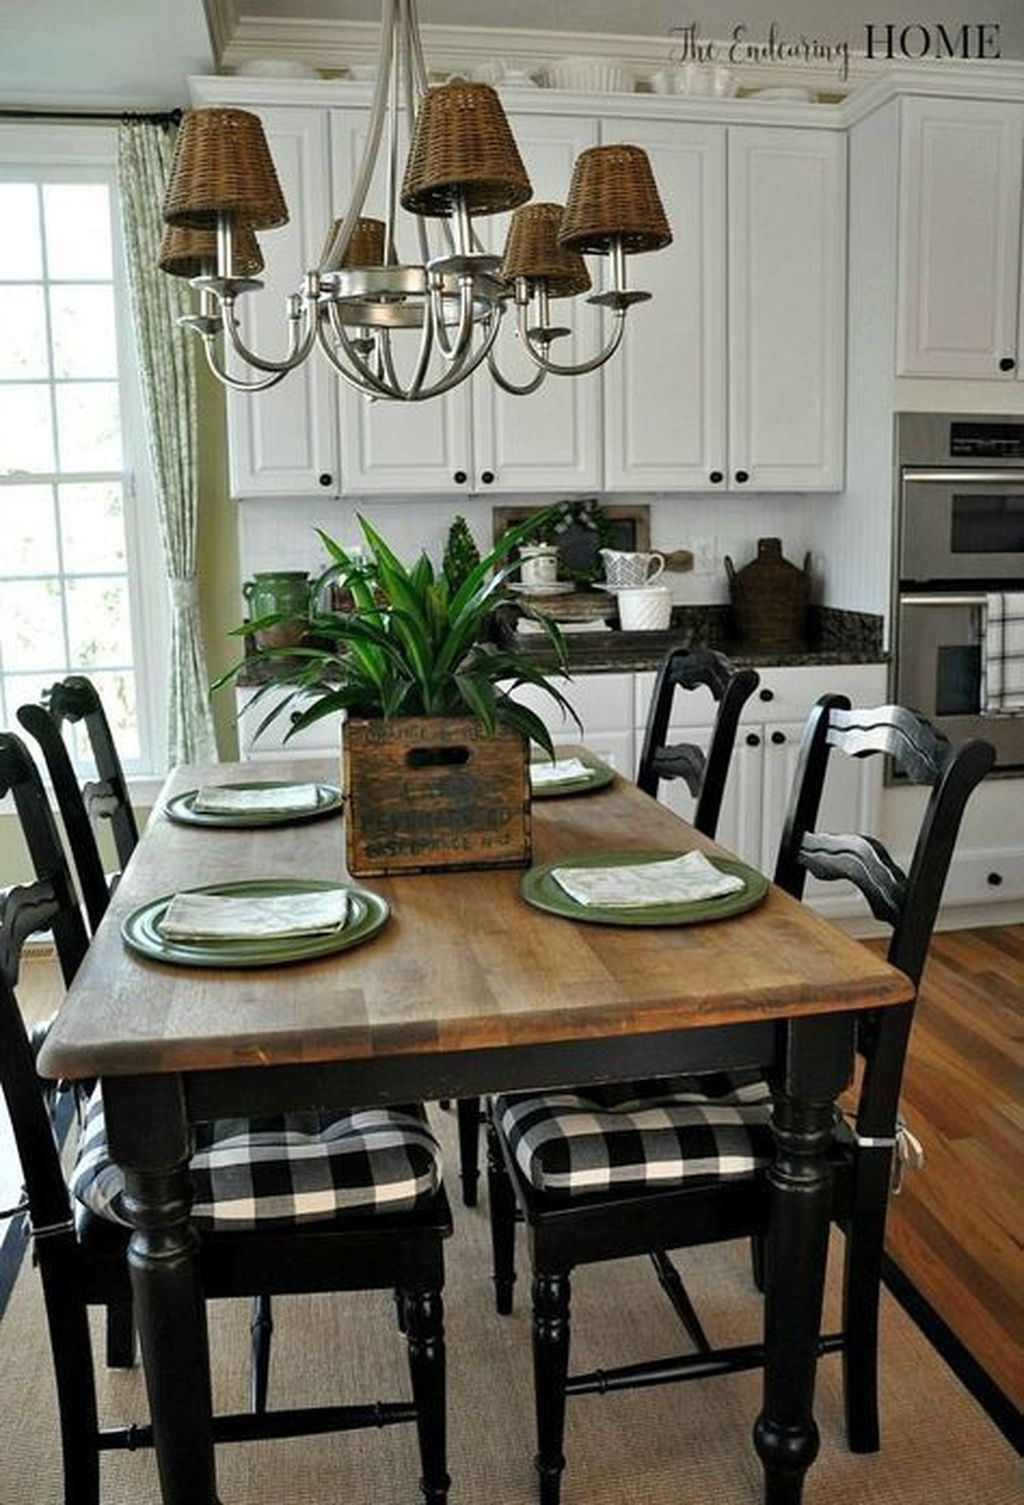 40 Great Farmhouse Kitchen Tables Ideas Perfect For Your Ordinary Kitchen #farmhousekitchencolors